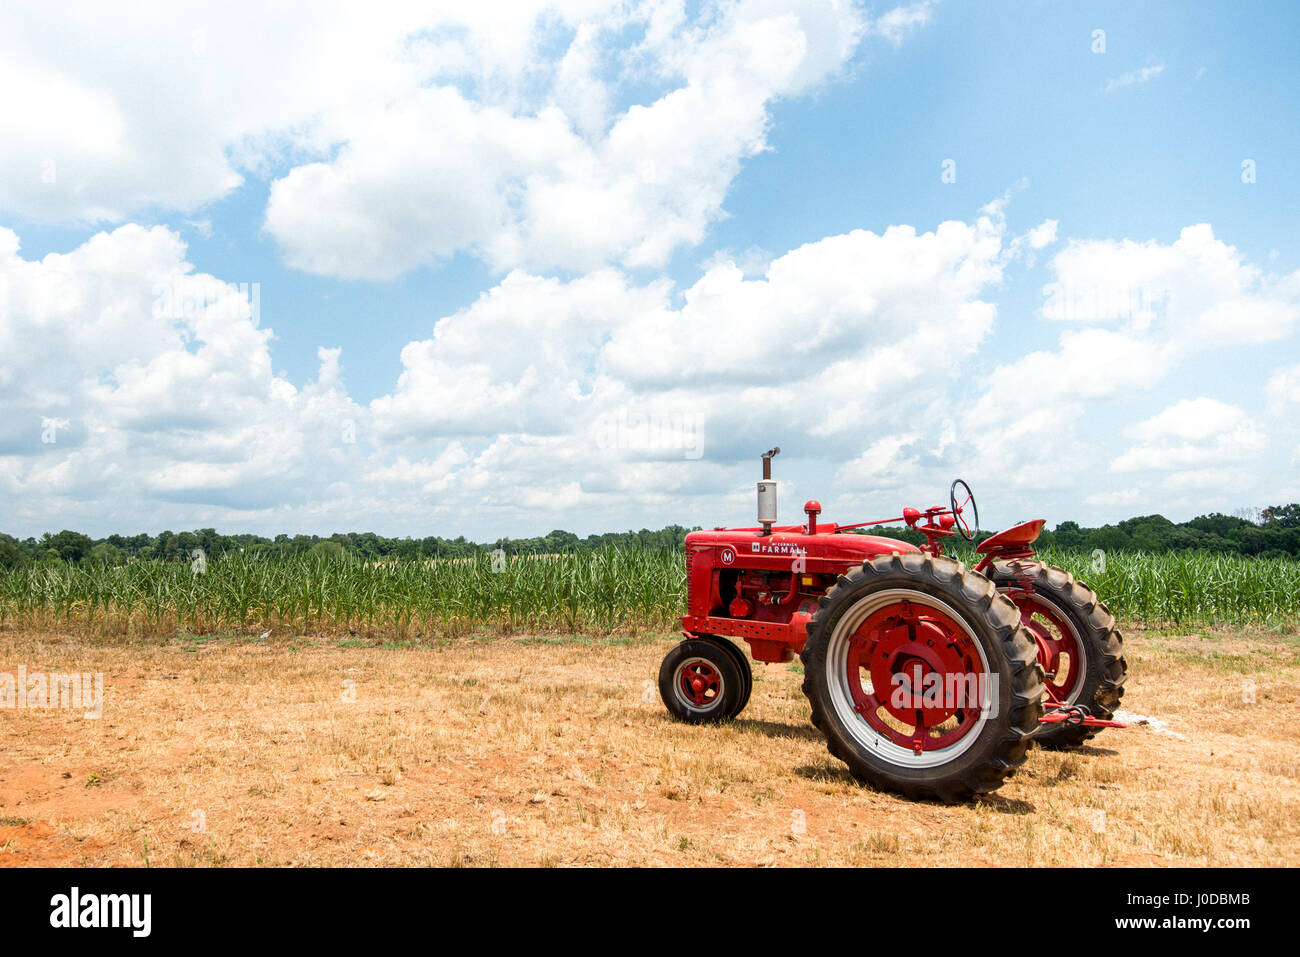 A red McCormick Farmhall tractor in front of a field in North Carolina during the summer months. Stock Photo